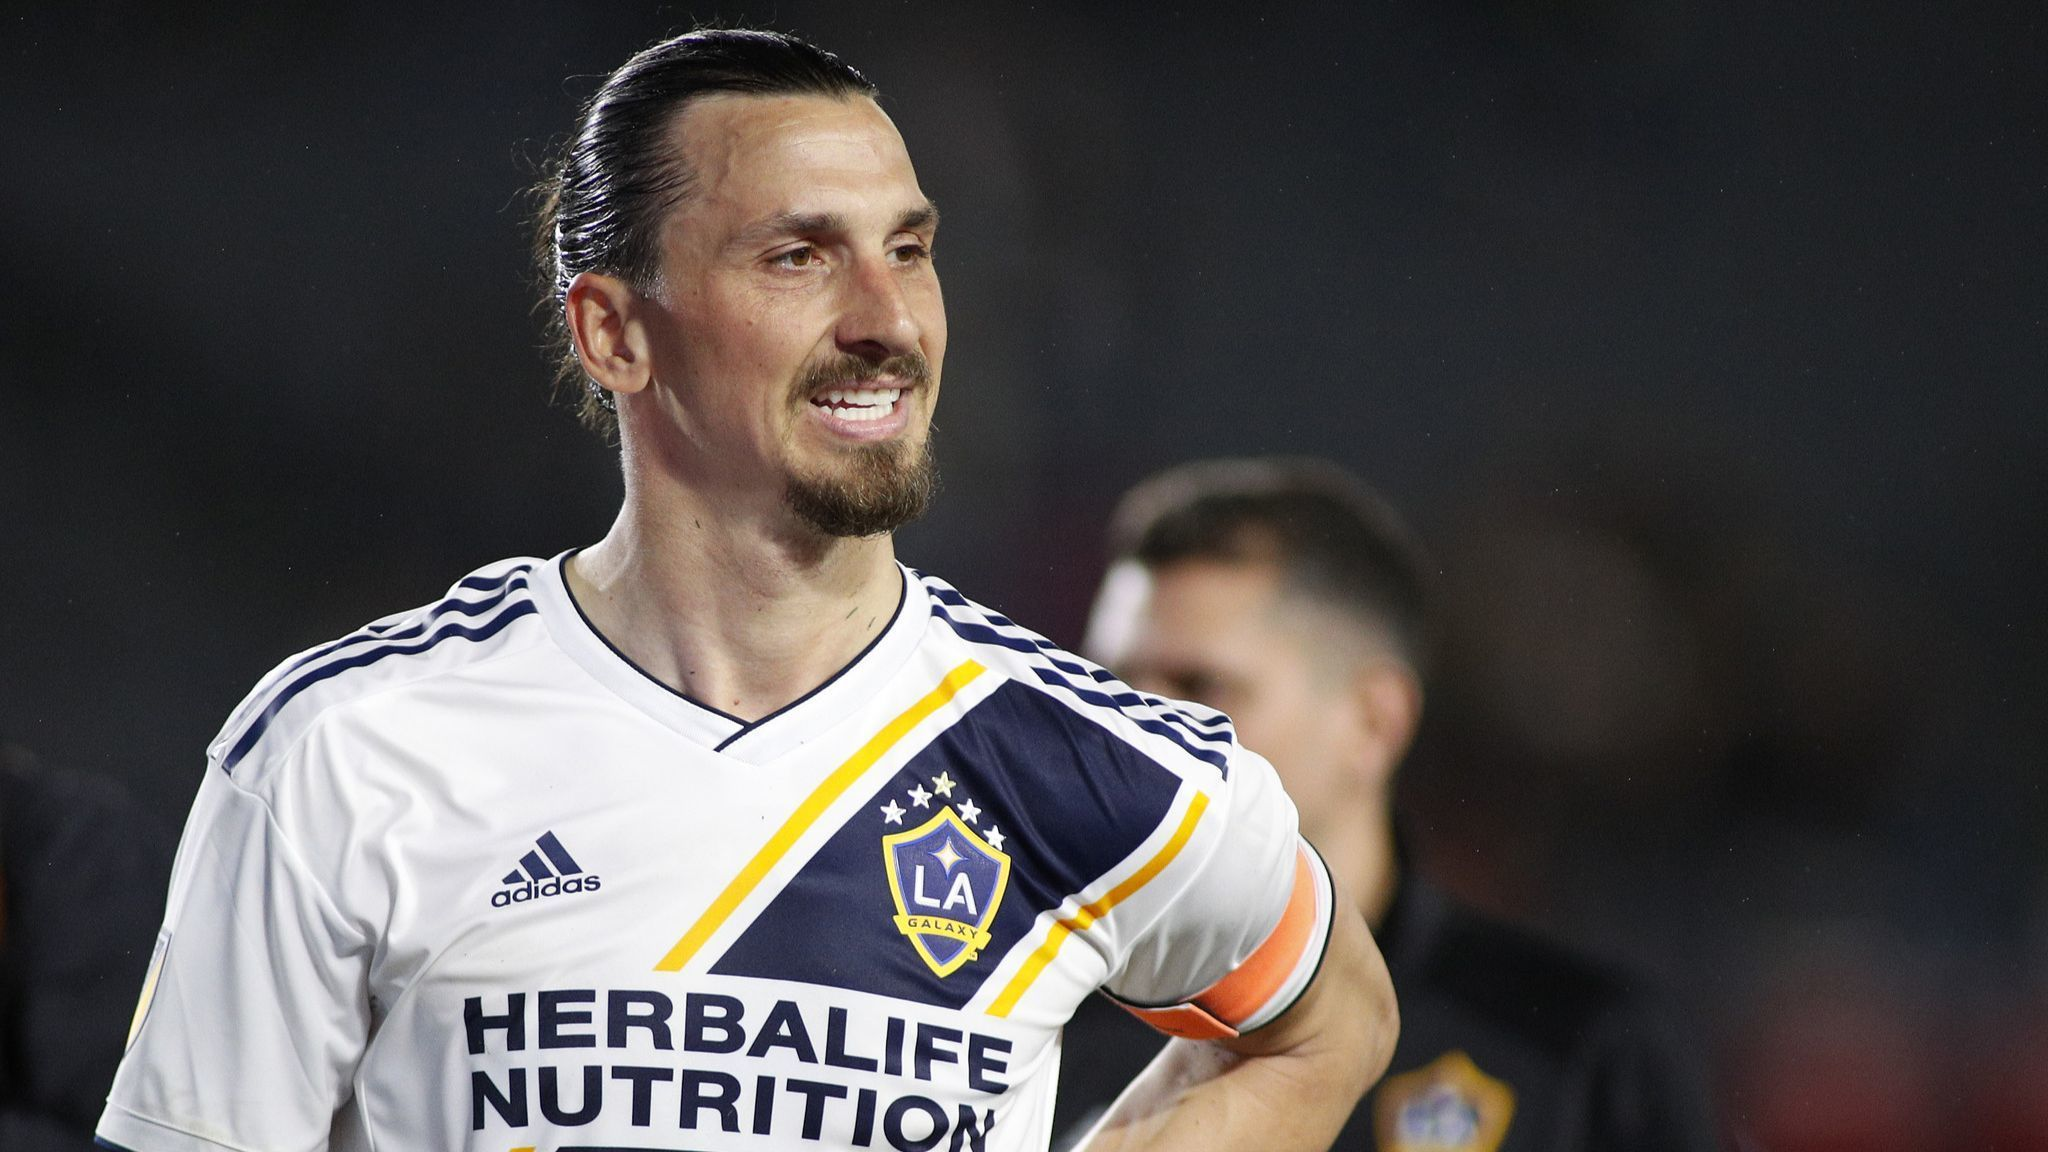 Galaxy thought Zlatan Ibrahimovic would be their safety net. Now he's hurt